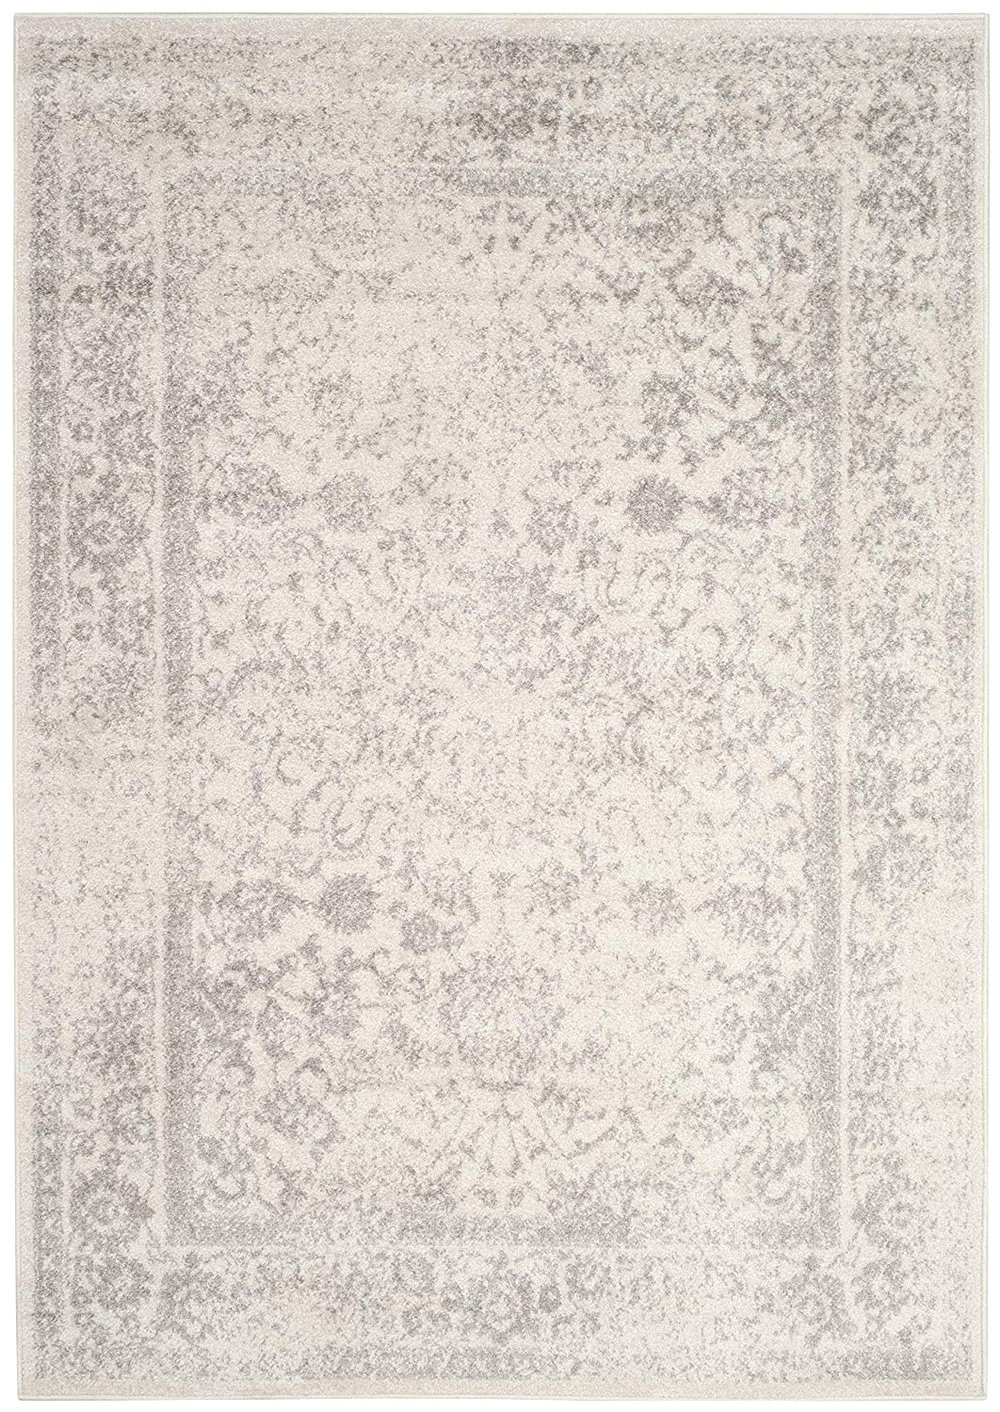 Distressed Silver Rug, Rectangular (2)   3x5; 4x6